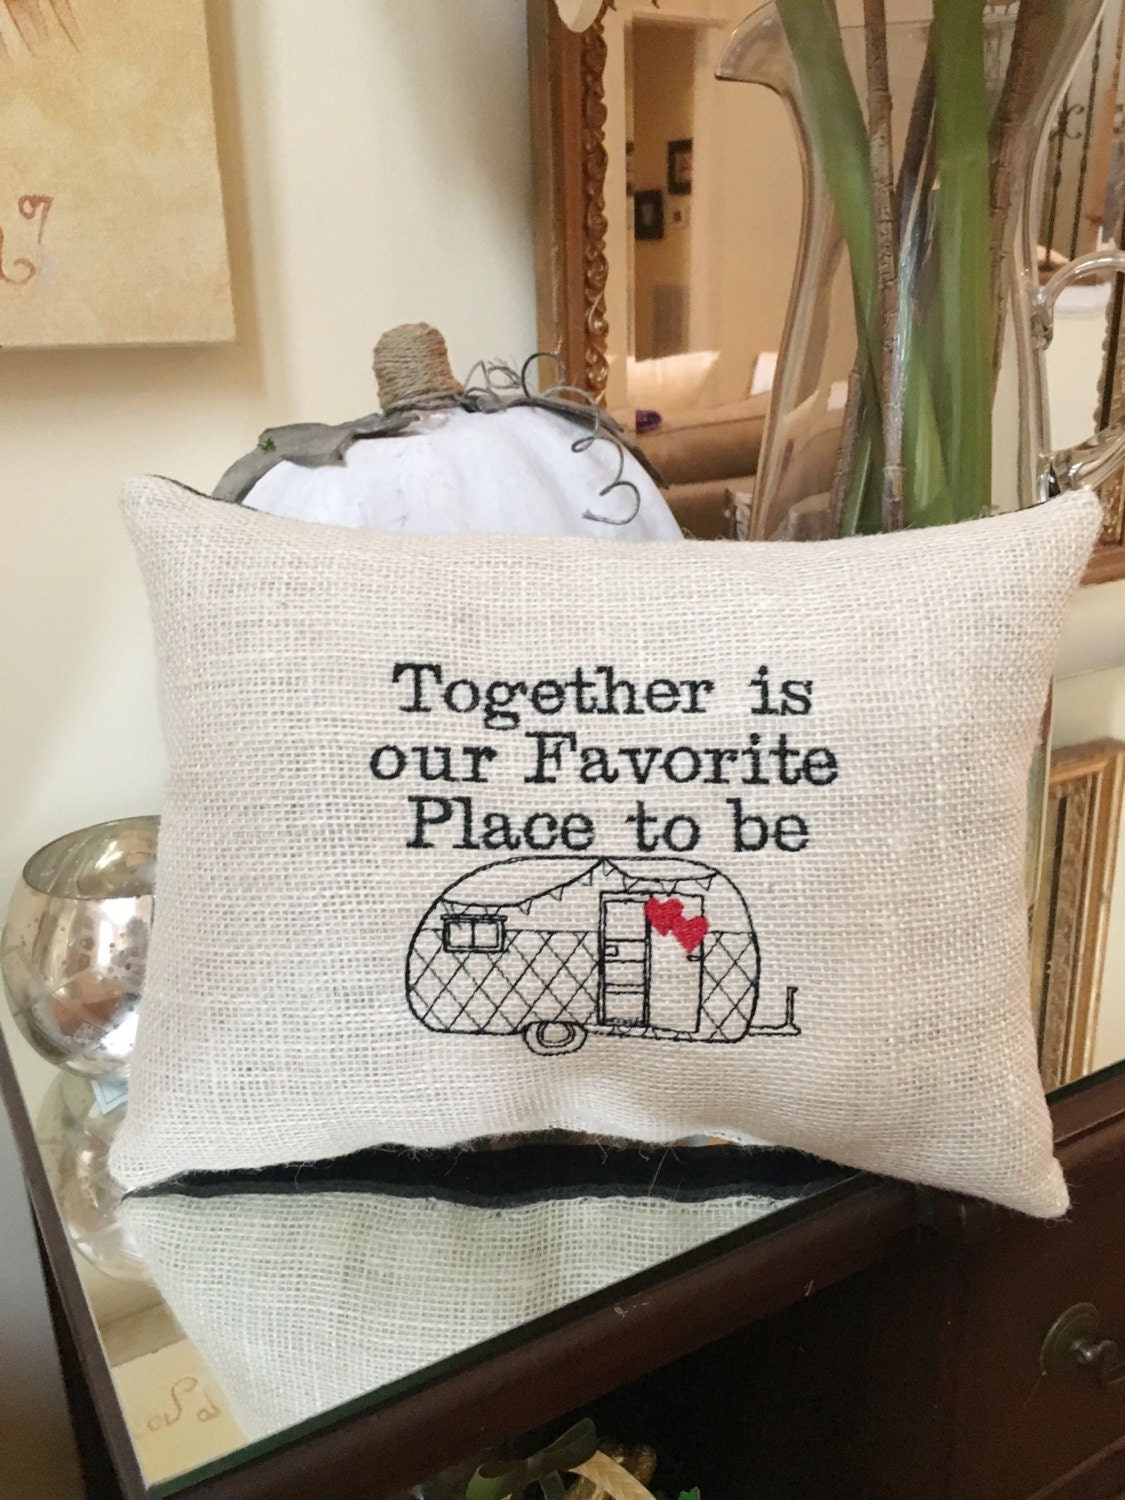 Decorative Pillows Travel Theme : RV Decorative Pillow Home & Camper RV Decor Together is Our